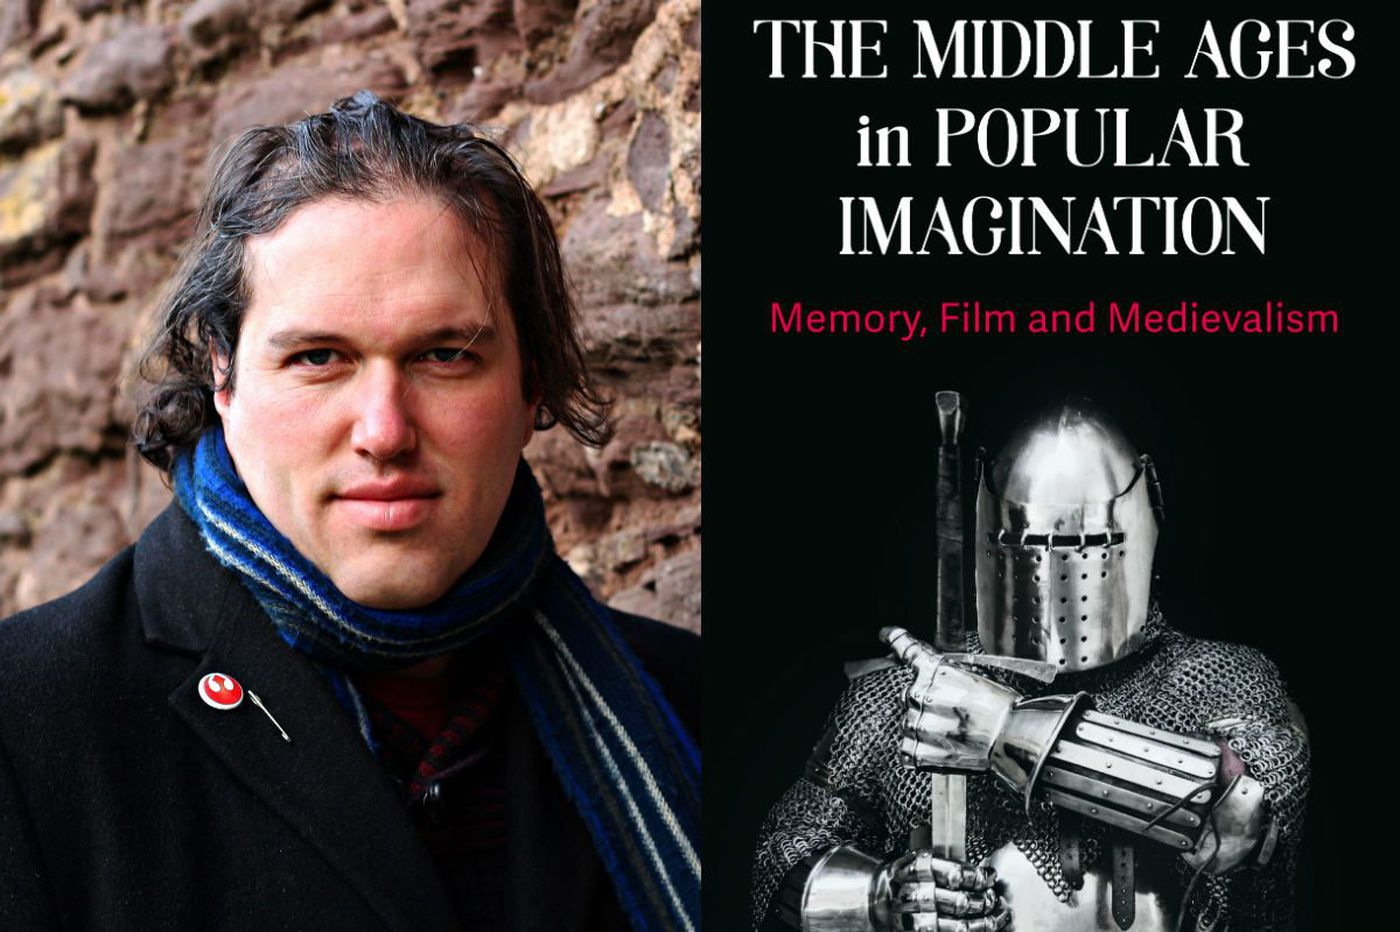 Paul B. Sturtevant's 'Middle Ages': Learning a little history from popular culture